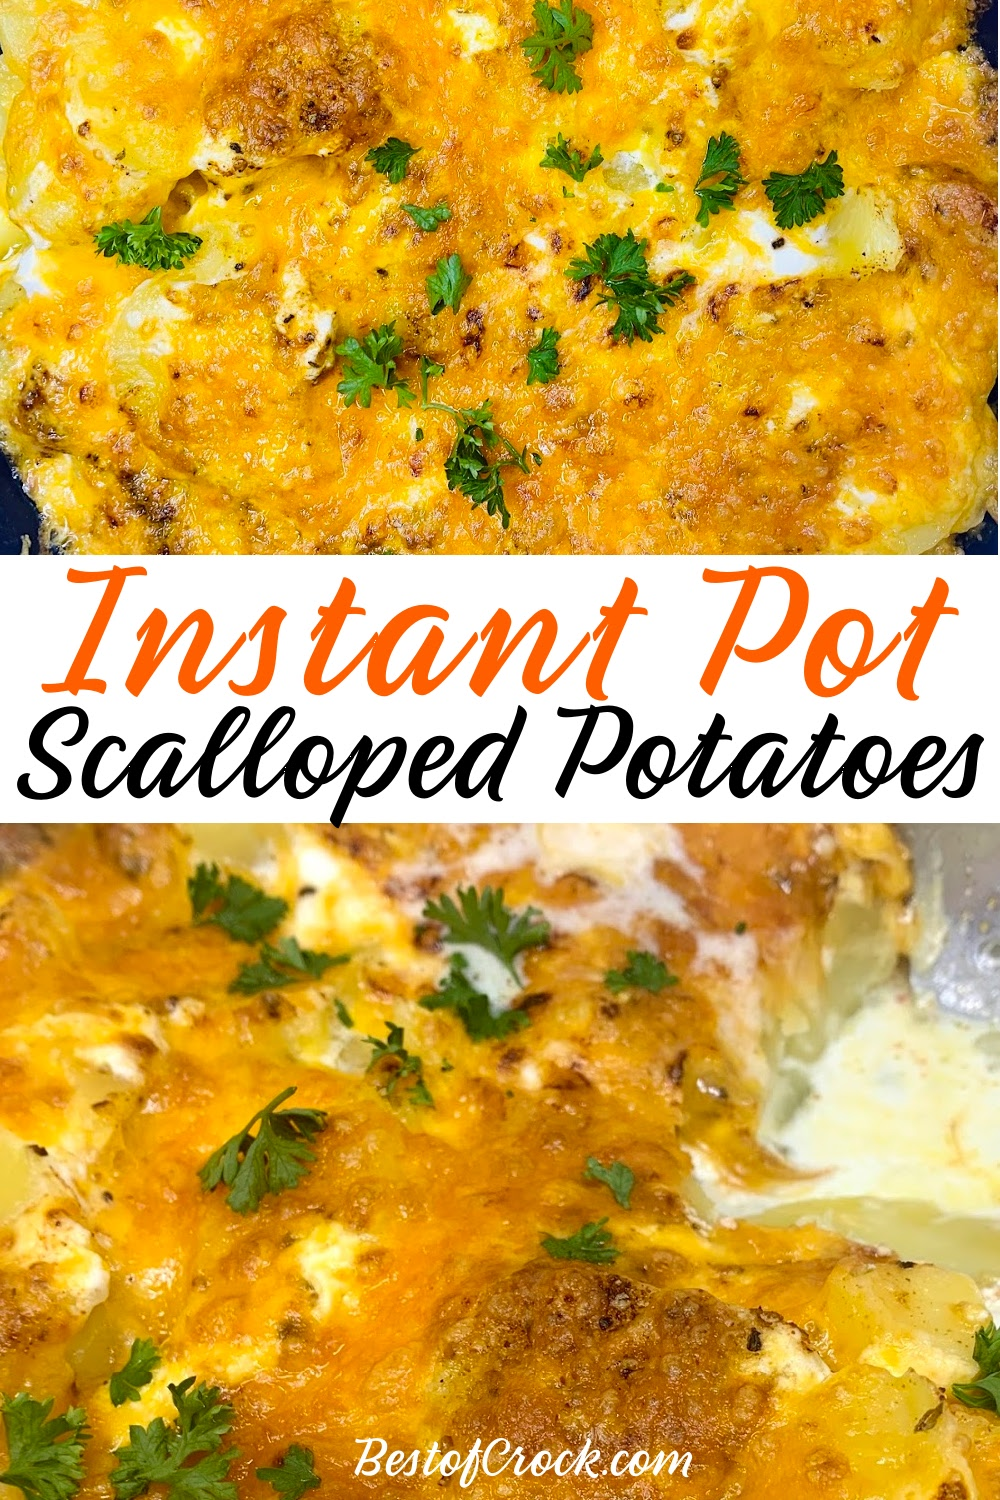 Instant Pot side dish recipes help make putting together a family dinner easier and this Instant Pot sour cream scalloped potatoes recipe will help for sure! Instant Pot Scalloped Potatoes with Sour Cream | Instant Pot Cheesy Potatoes | Instant Pot Side Dish Recipes | How to Make Scalloped Potatoes | Instant Pot BBQ Recipes | Instant Pot Potato Recipes | Party Side Dish Recipes #instantpot #potatoes via @bestofcrock